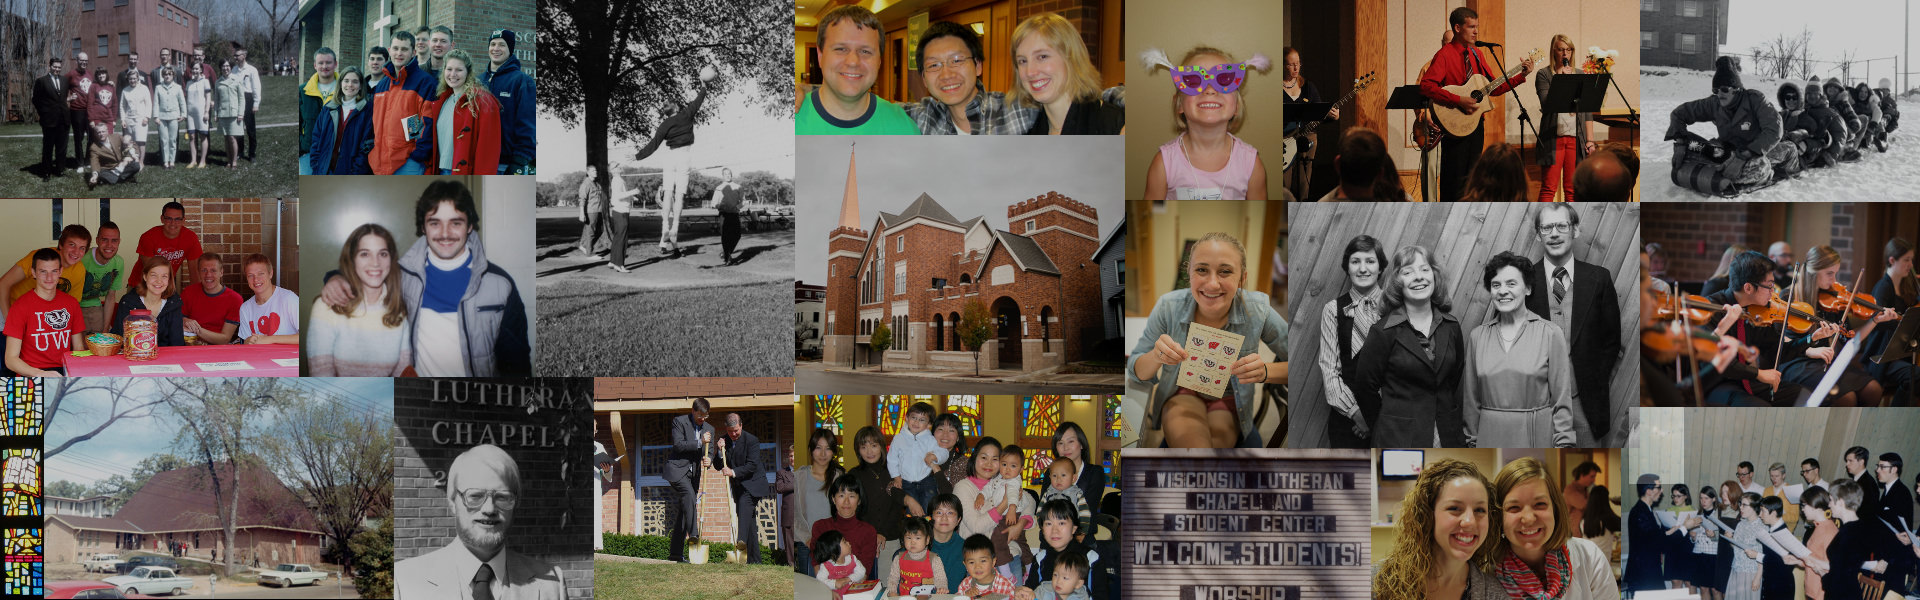 A collage of photos from Wisconsin Lutheran Chapel's ministry over the years